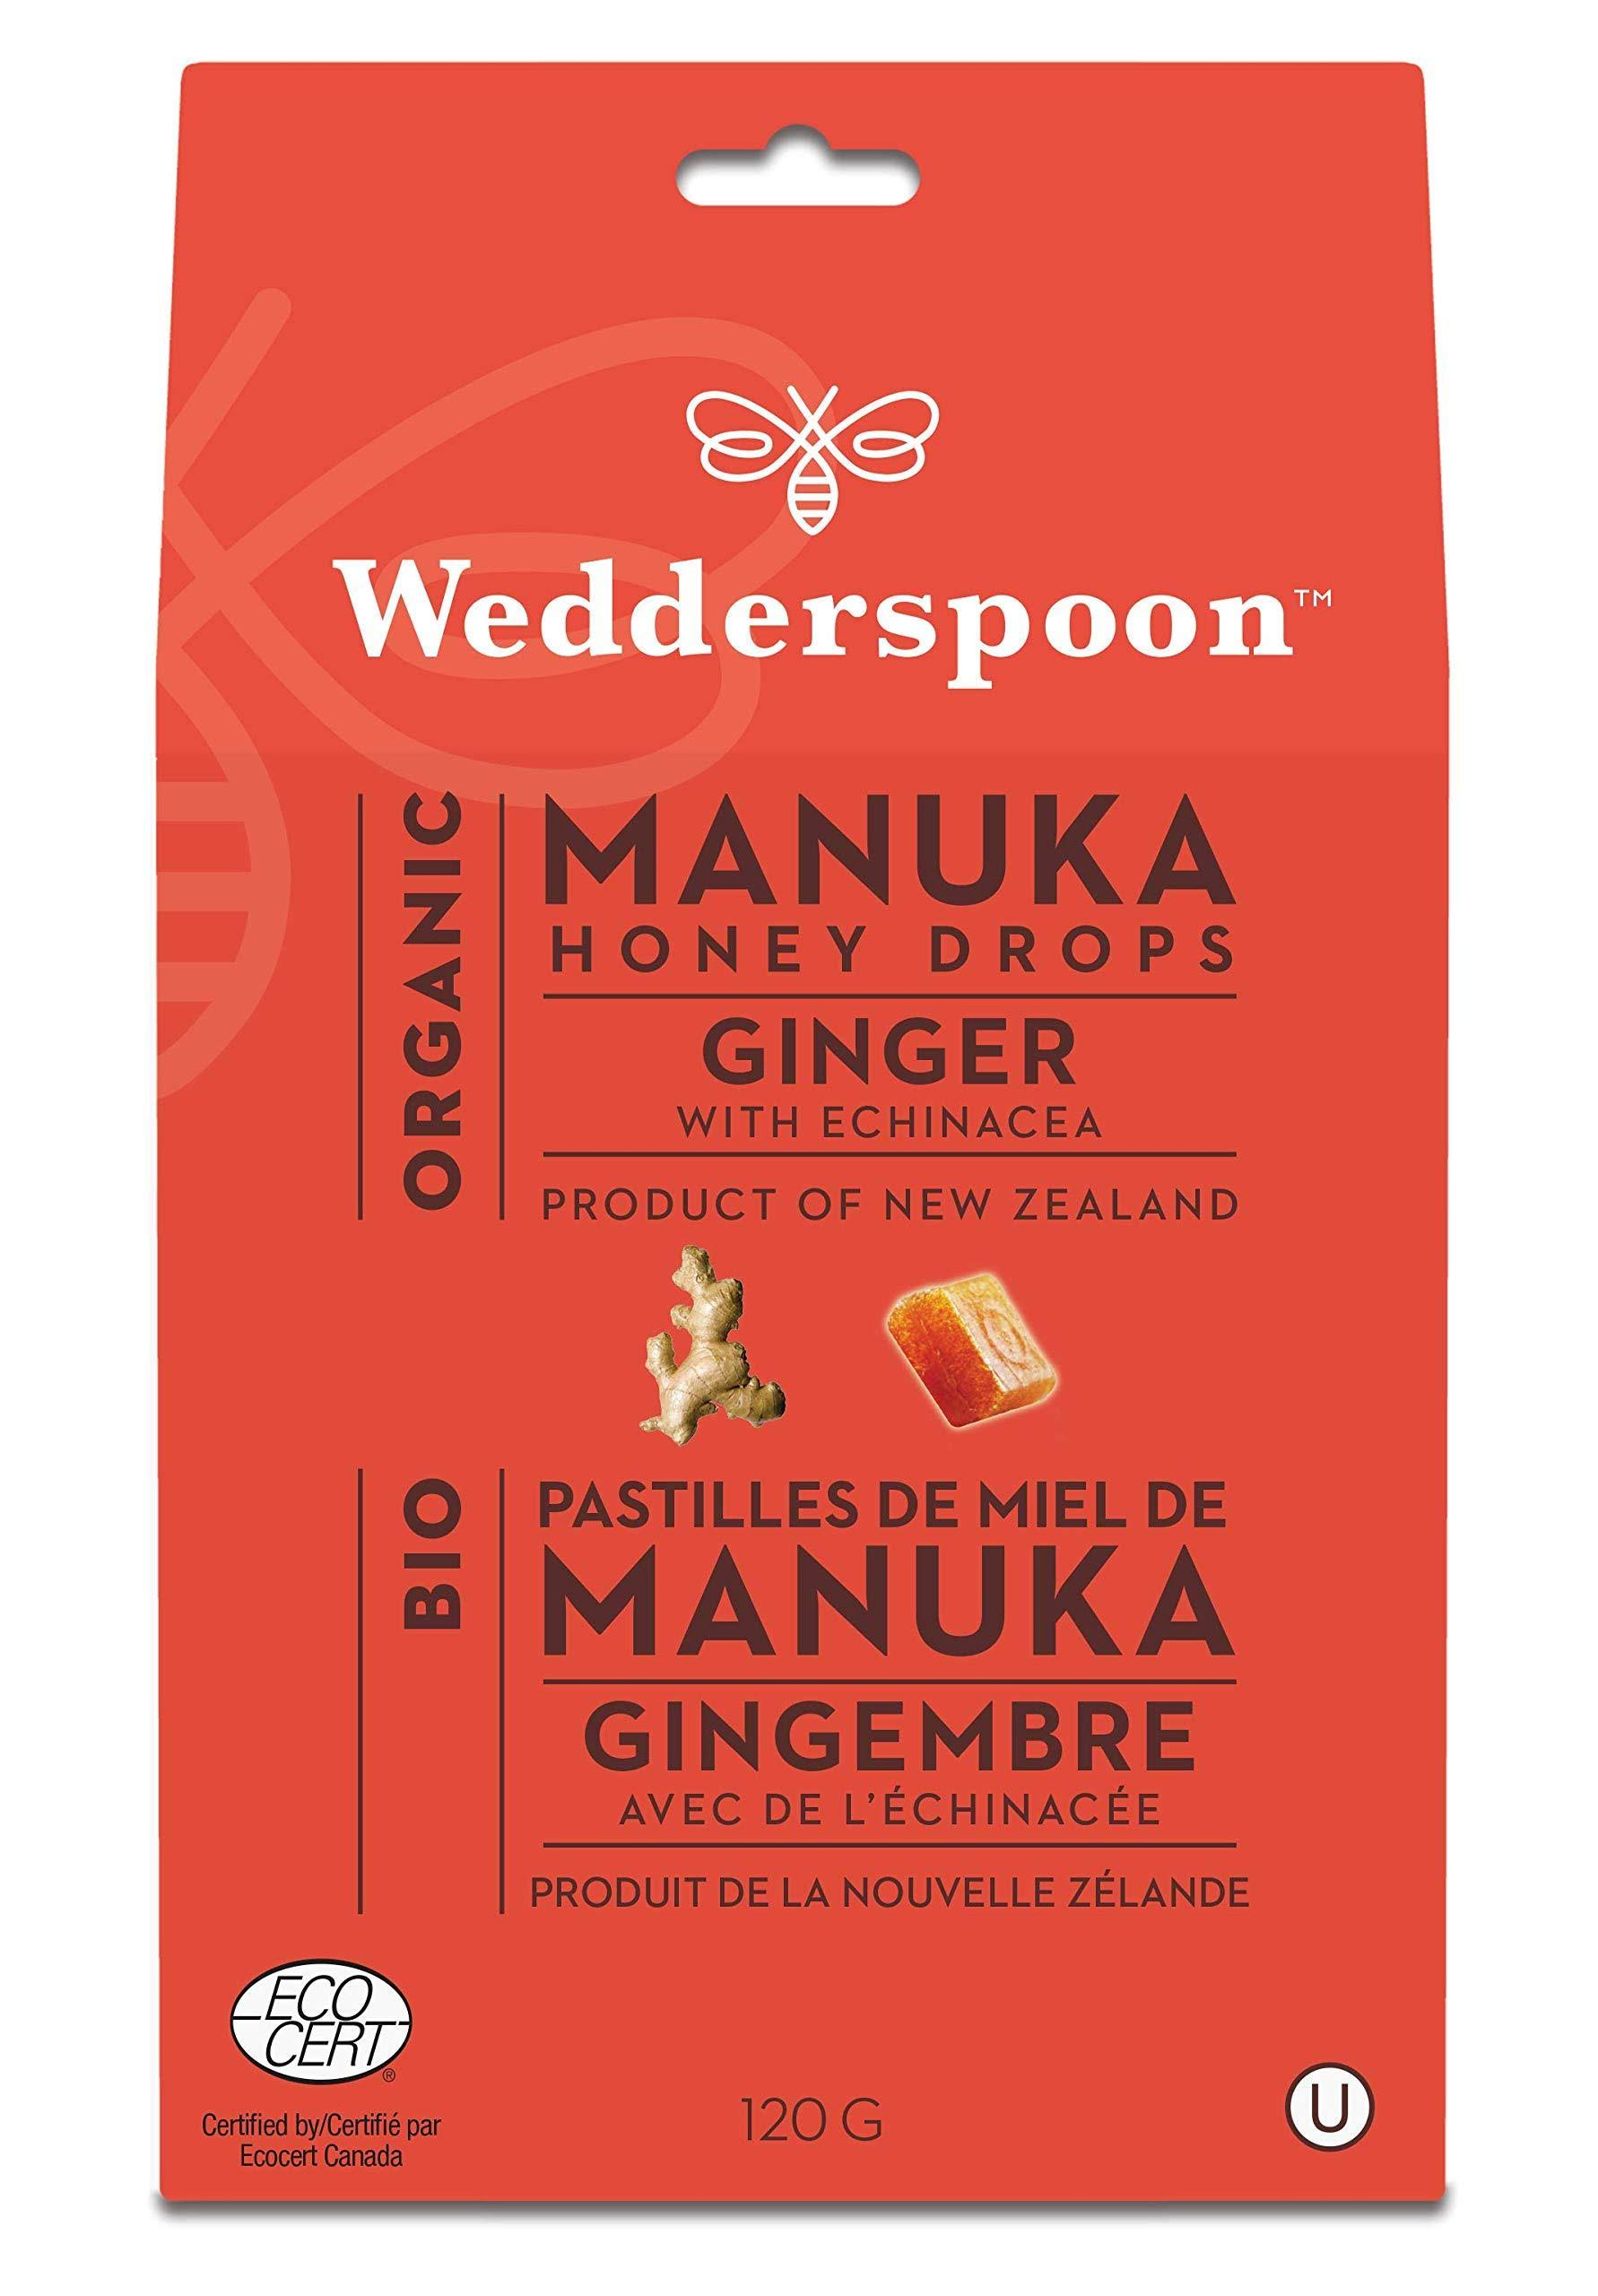 Wedderspoon Organic Manuka Honey Drops - Ginger, 120g